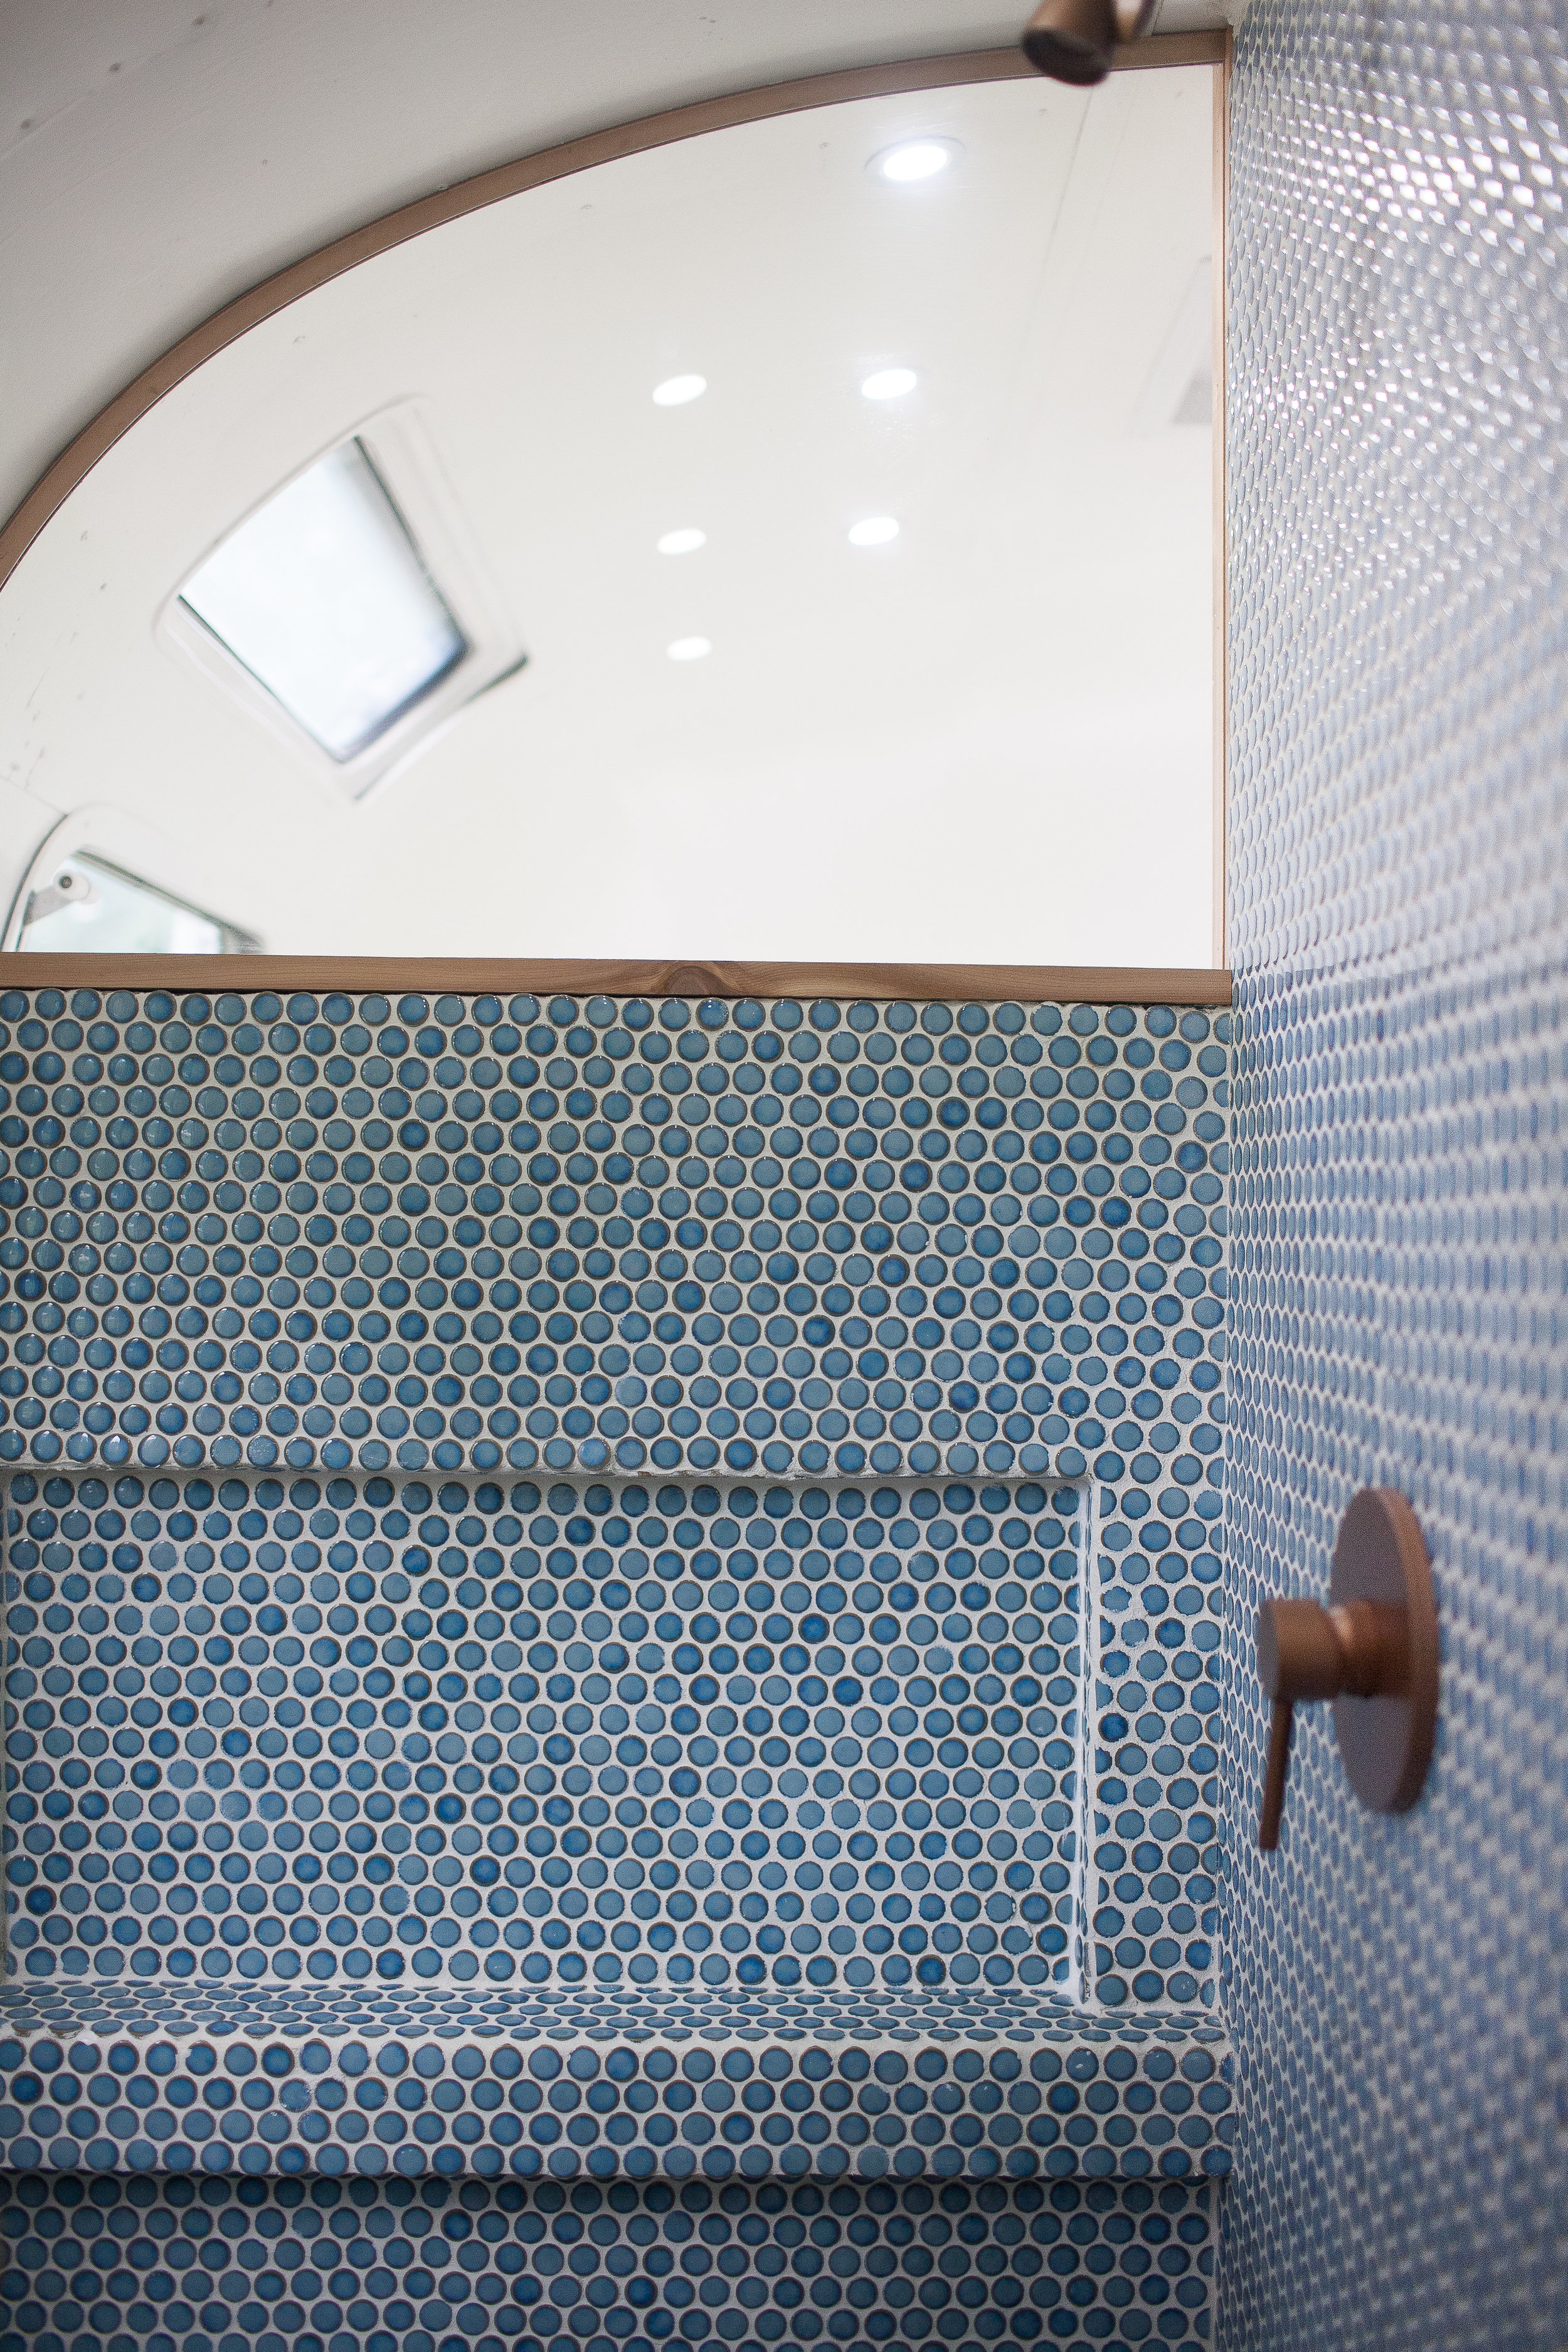 The tile was sourced from  All Modern .